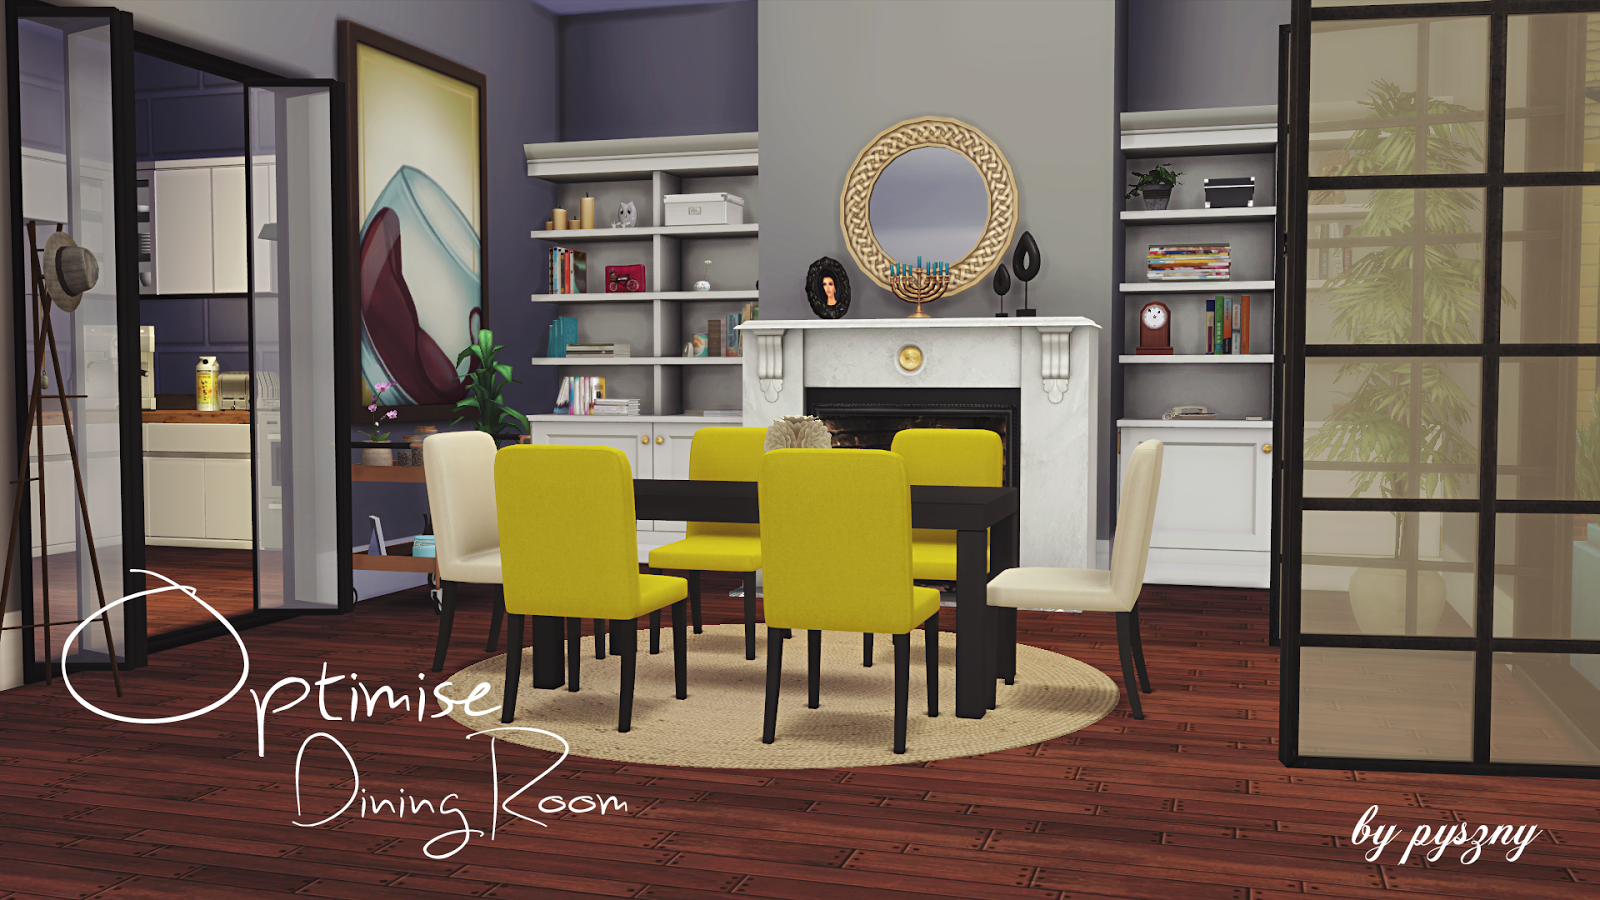 Optimise dining room updated for Dining room ideas sims 4